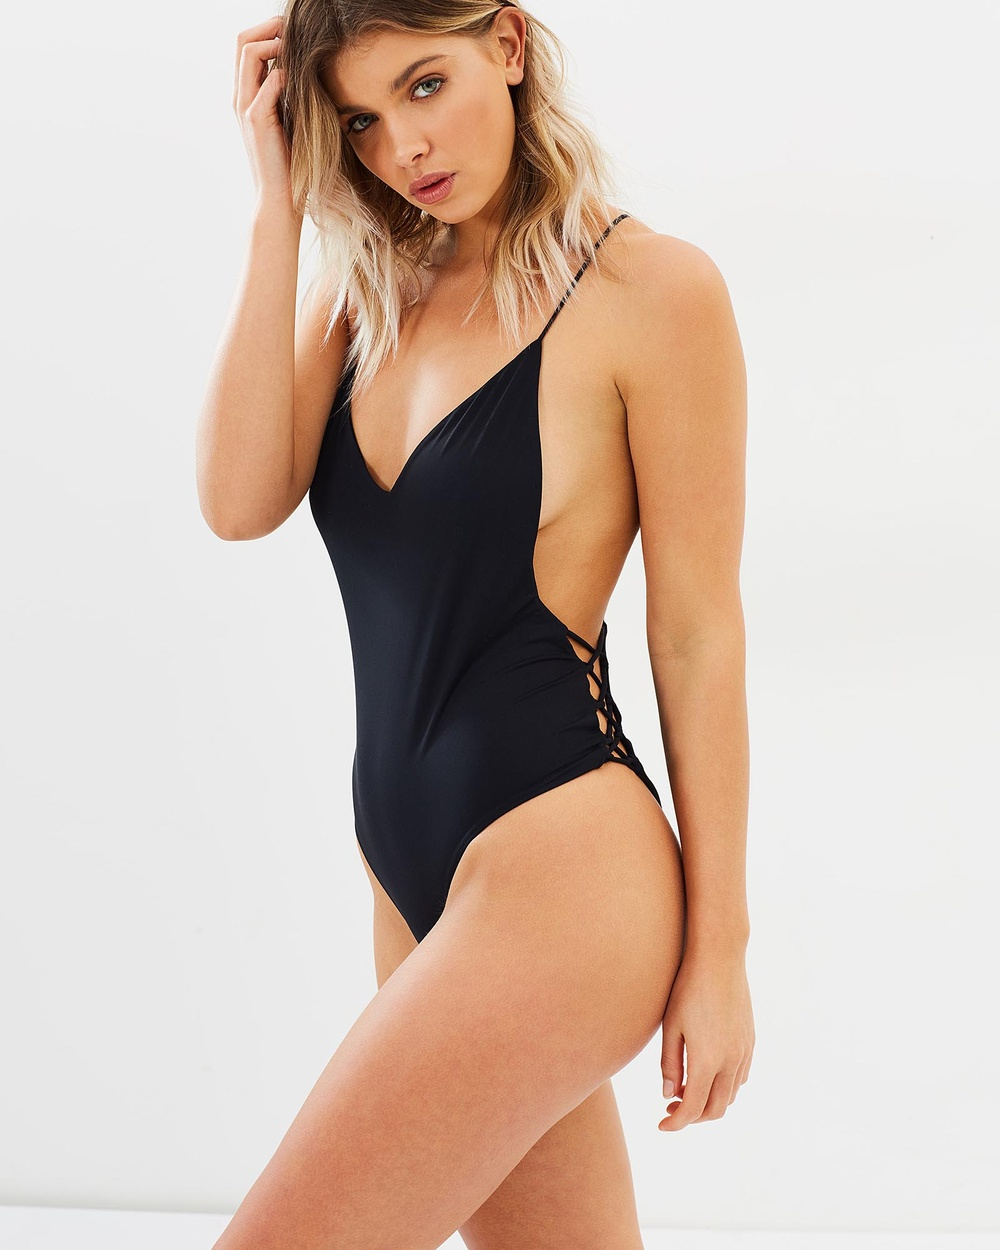 Bond-Eye Swimwear Up And Away One Piece One-Piece / Swimsuit Black Up And Away One Piece